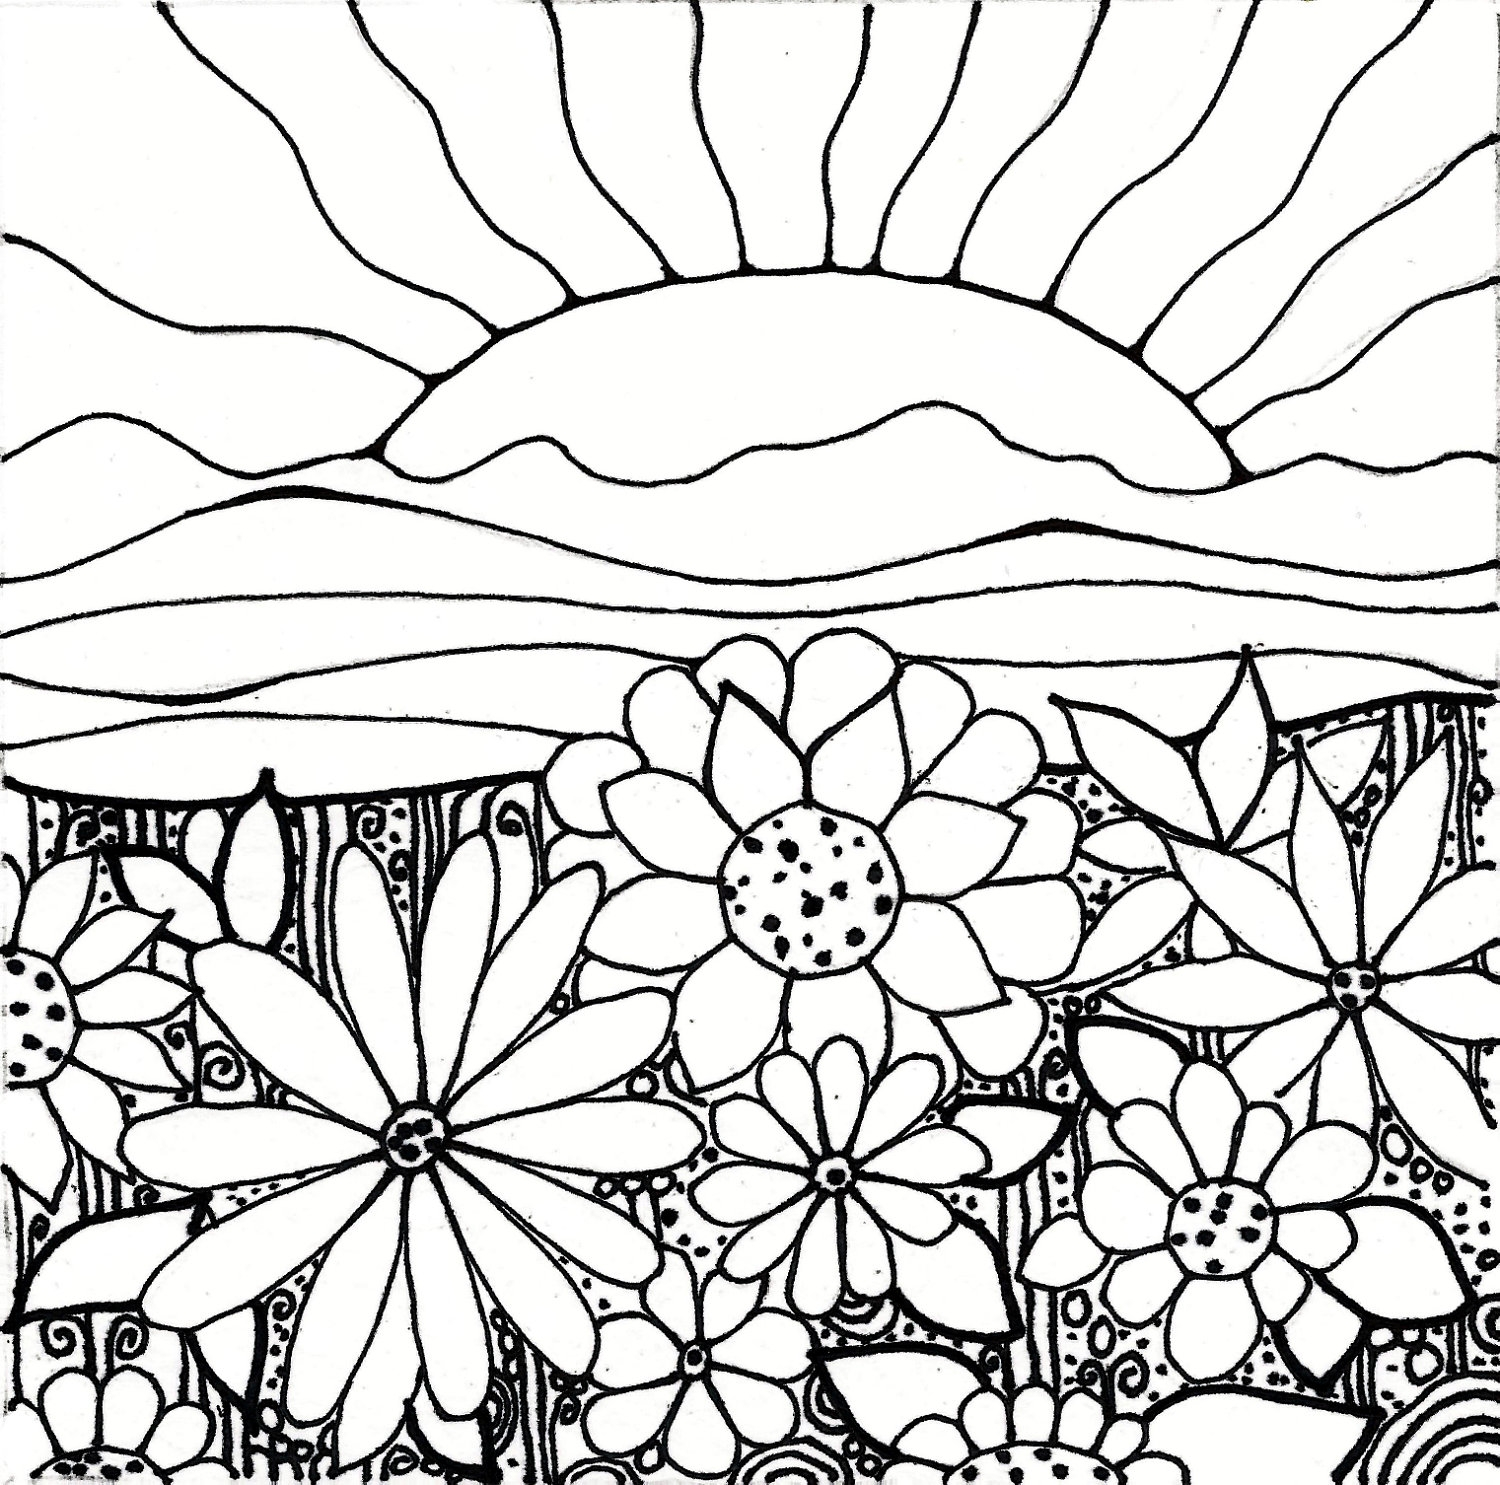 1500x1485 Download Coloring Pages. Garden Coloring Pages Garden Coloring